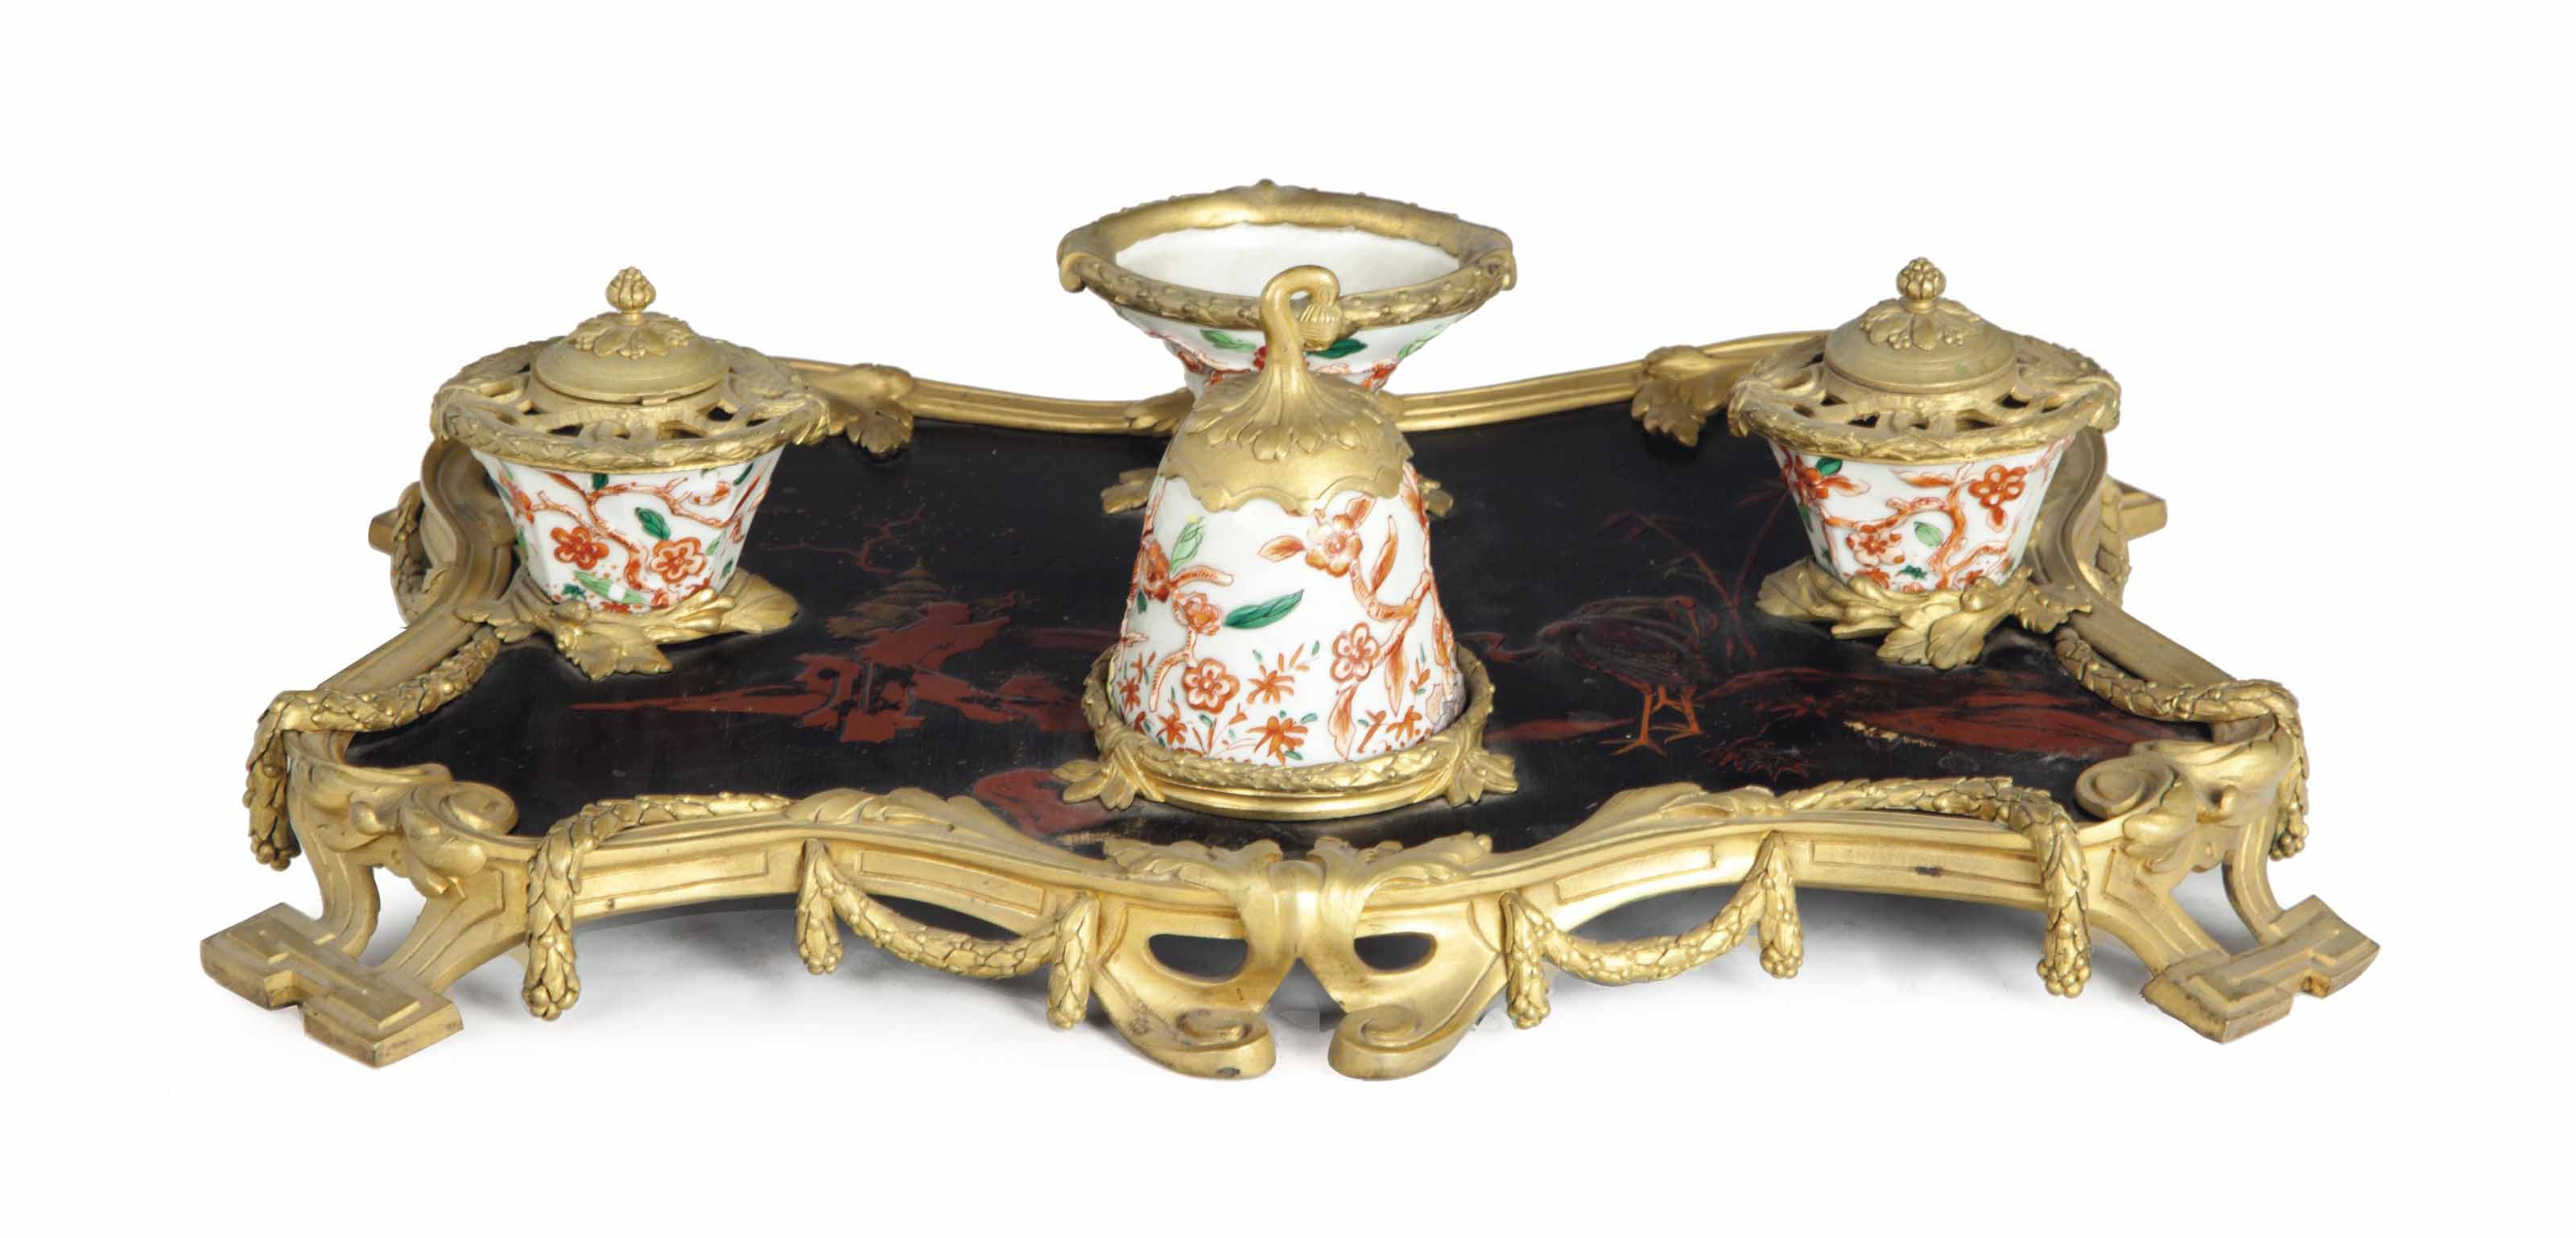 A FRENCH ORMOLU, CHINESE LAQUE